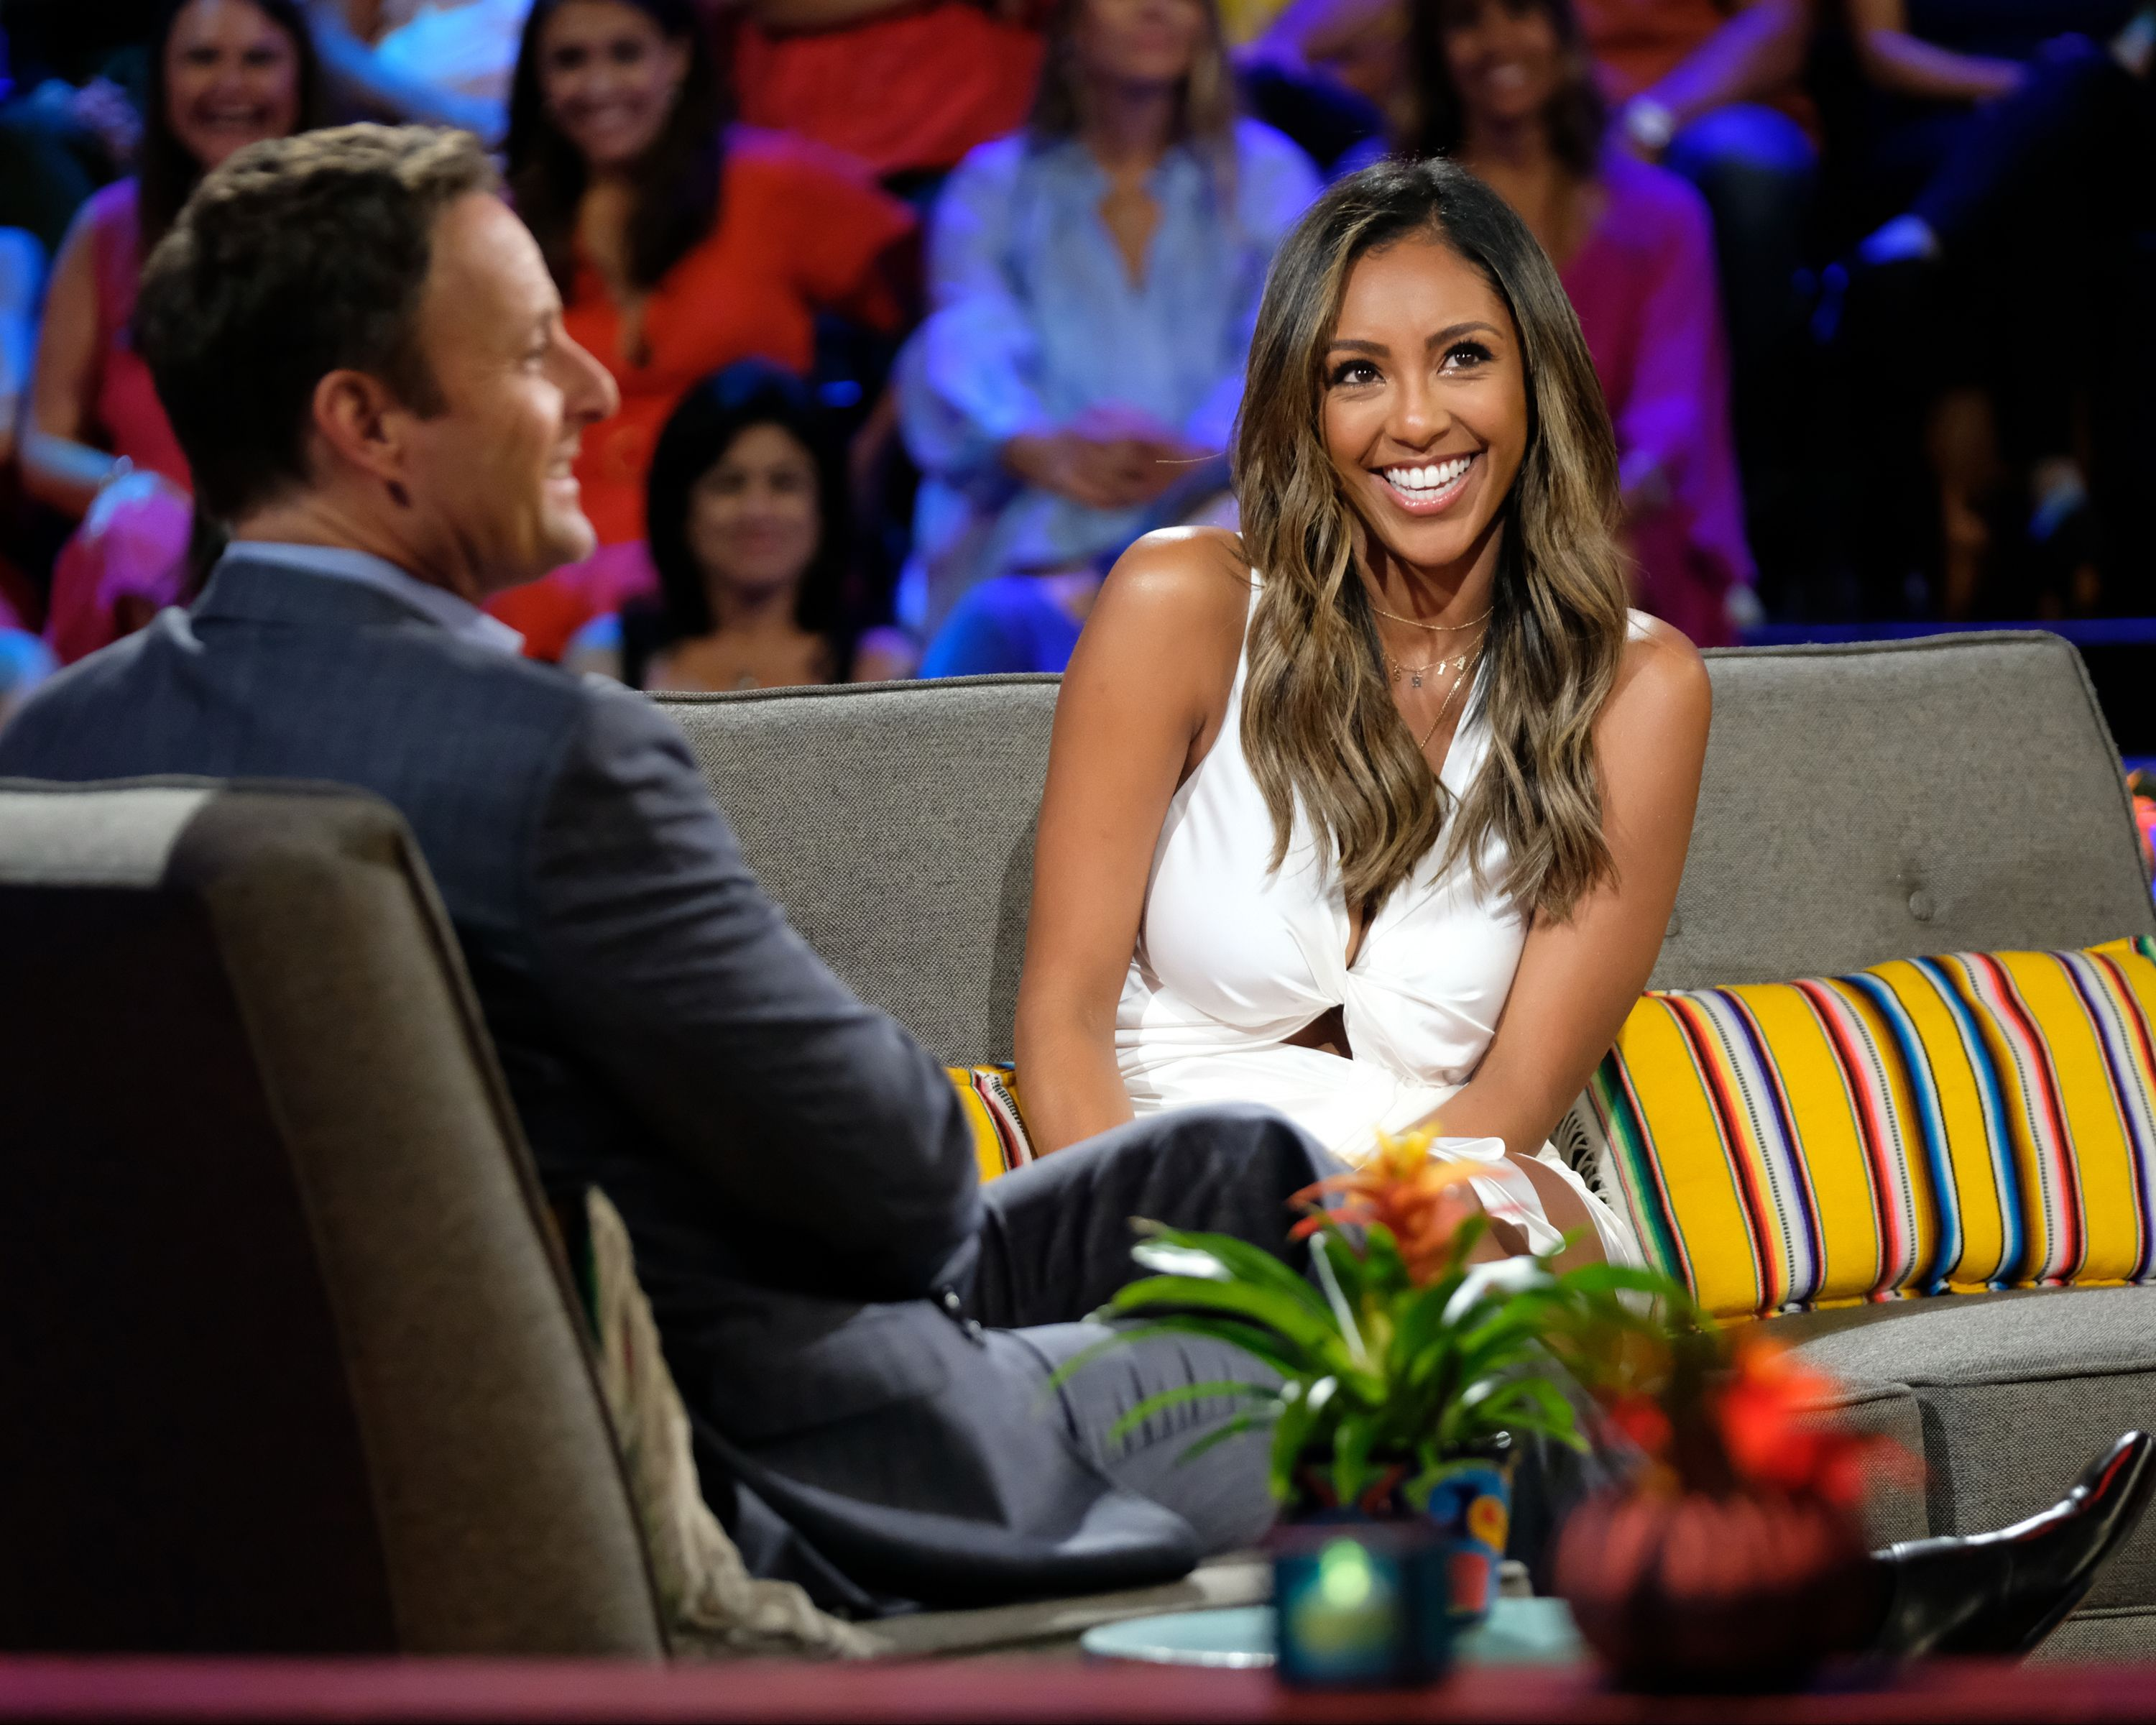 Are 'Bachelor in Paradise's' Tayshia Adams And John Paul Jones Still Together? Where The Couple Stands